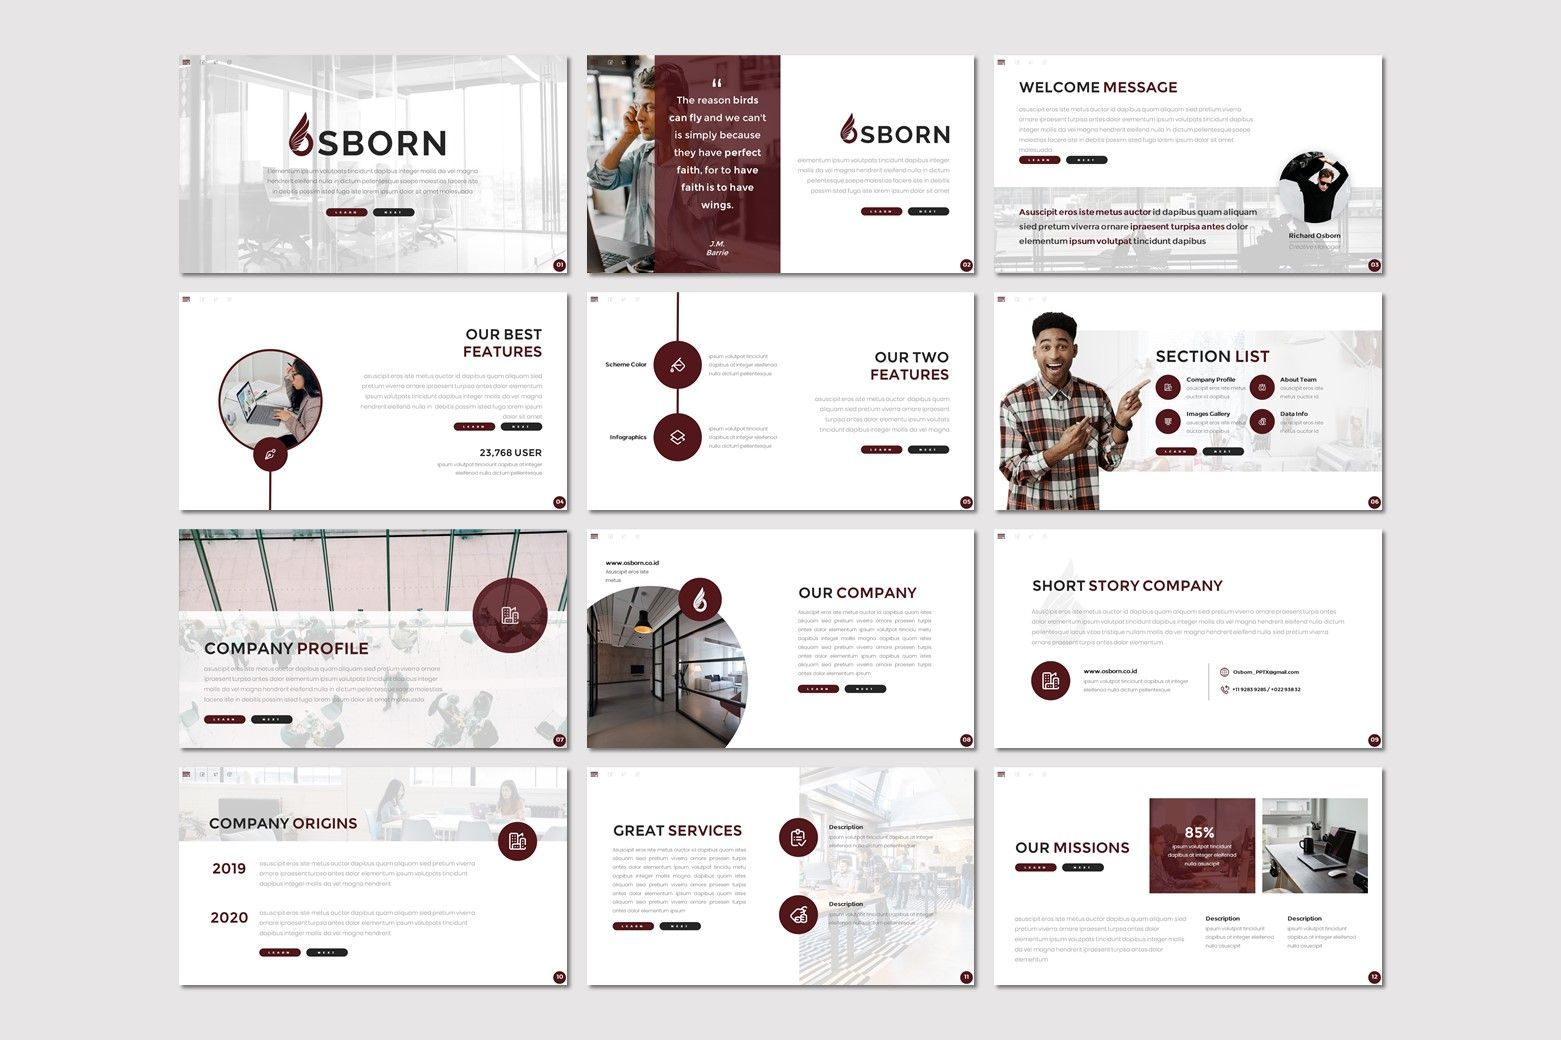 Osborn - Google Slides Template, Slide 2, 07826, Presentation Templates — PoweredTemplate.com